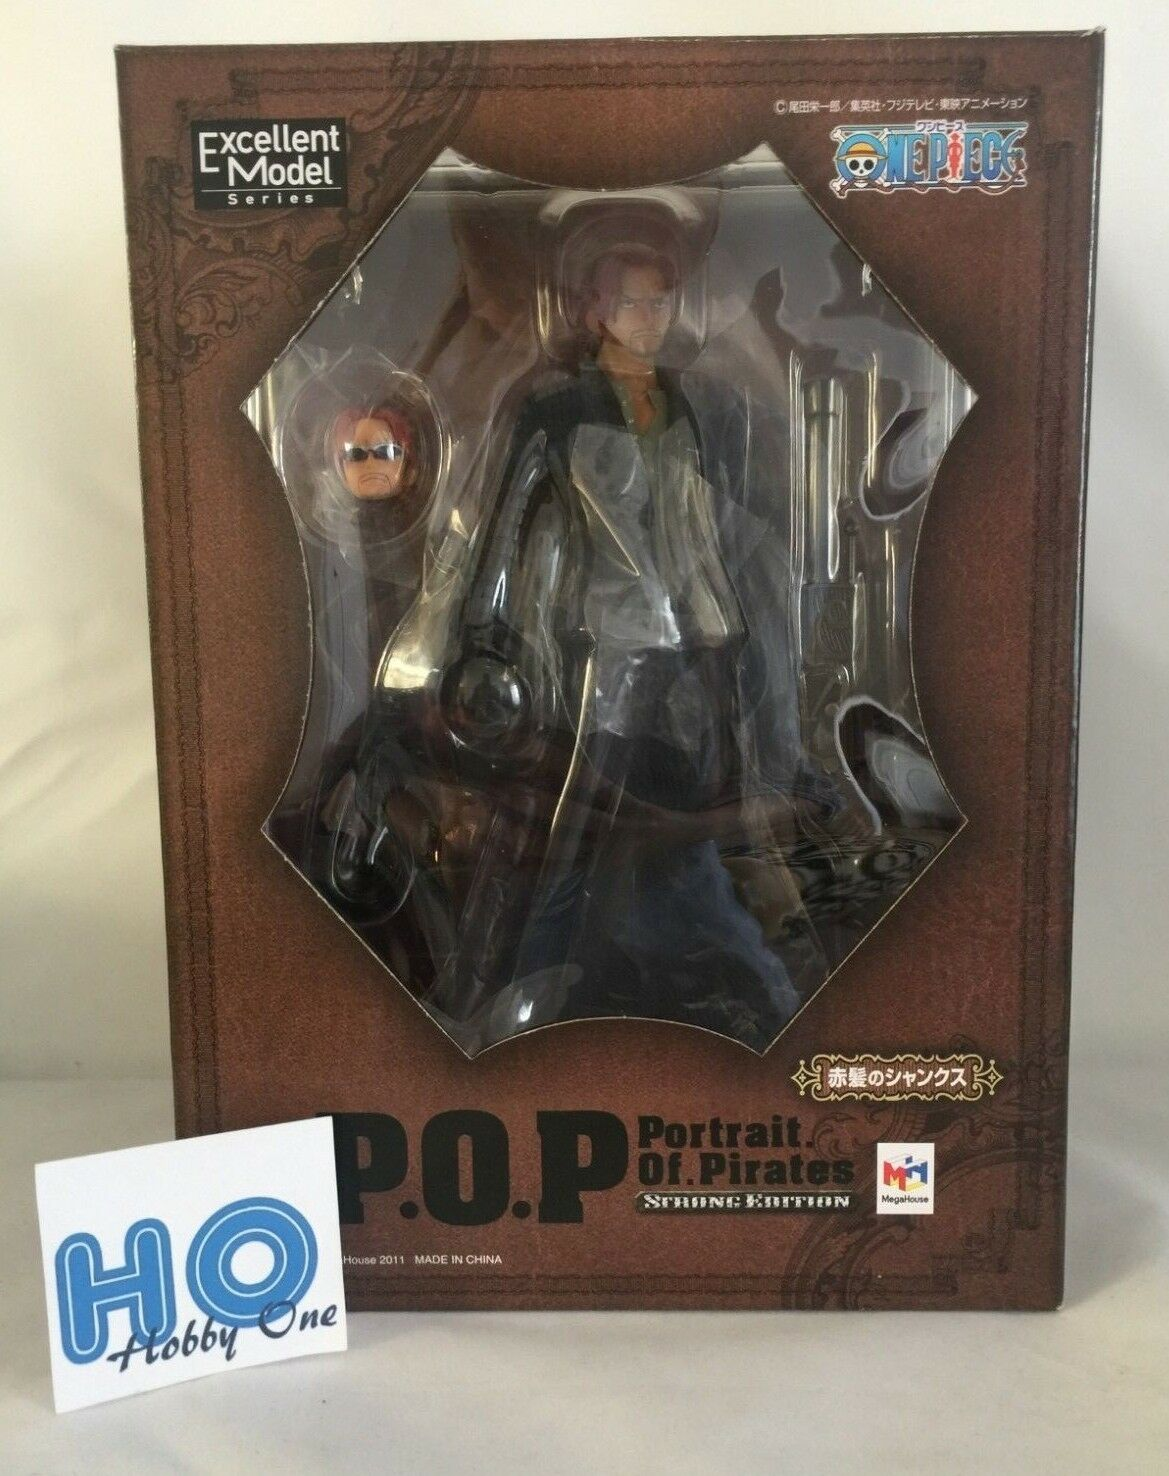 One Piece - Shanks Strong Edition - P.O.P. ( Portrait of Pirates ) - Authentic